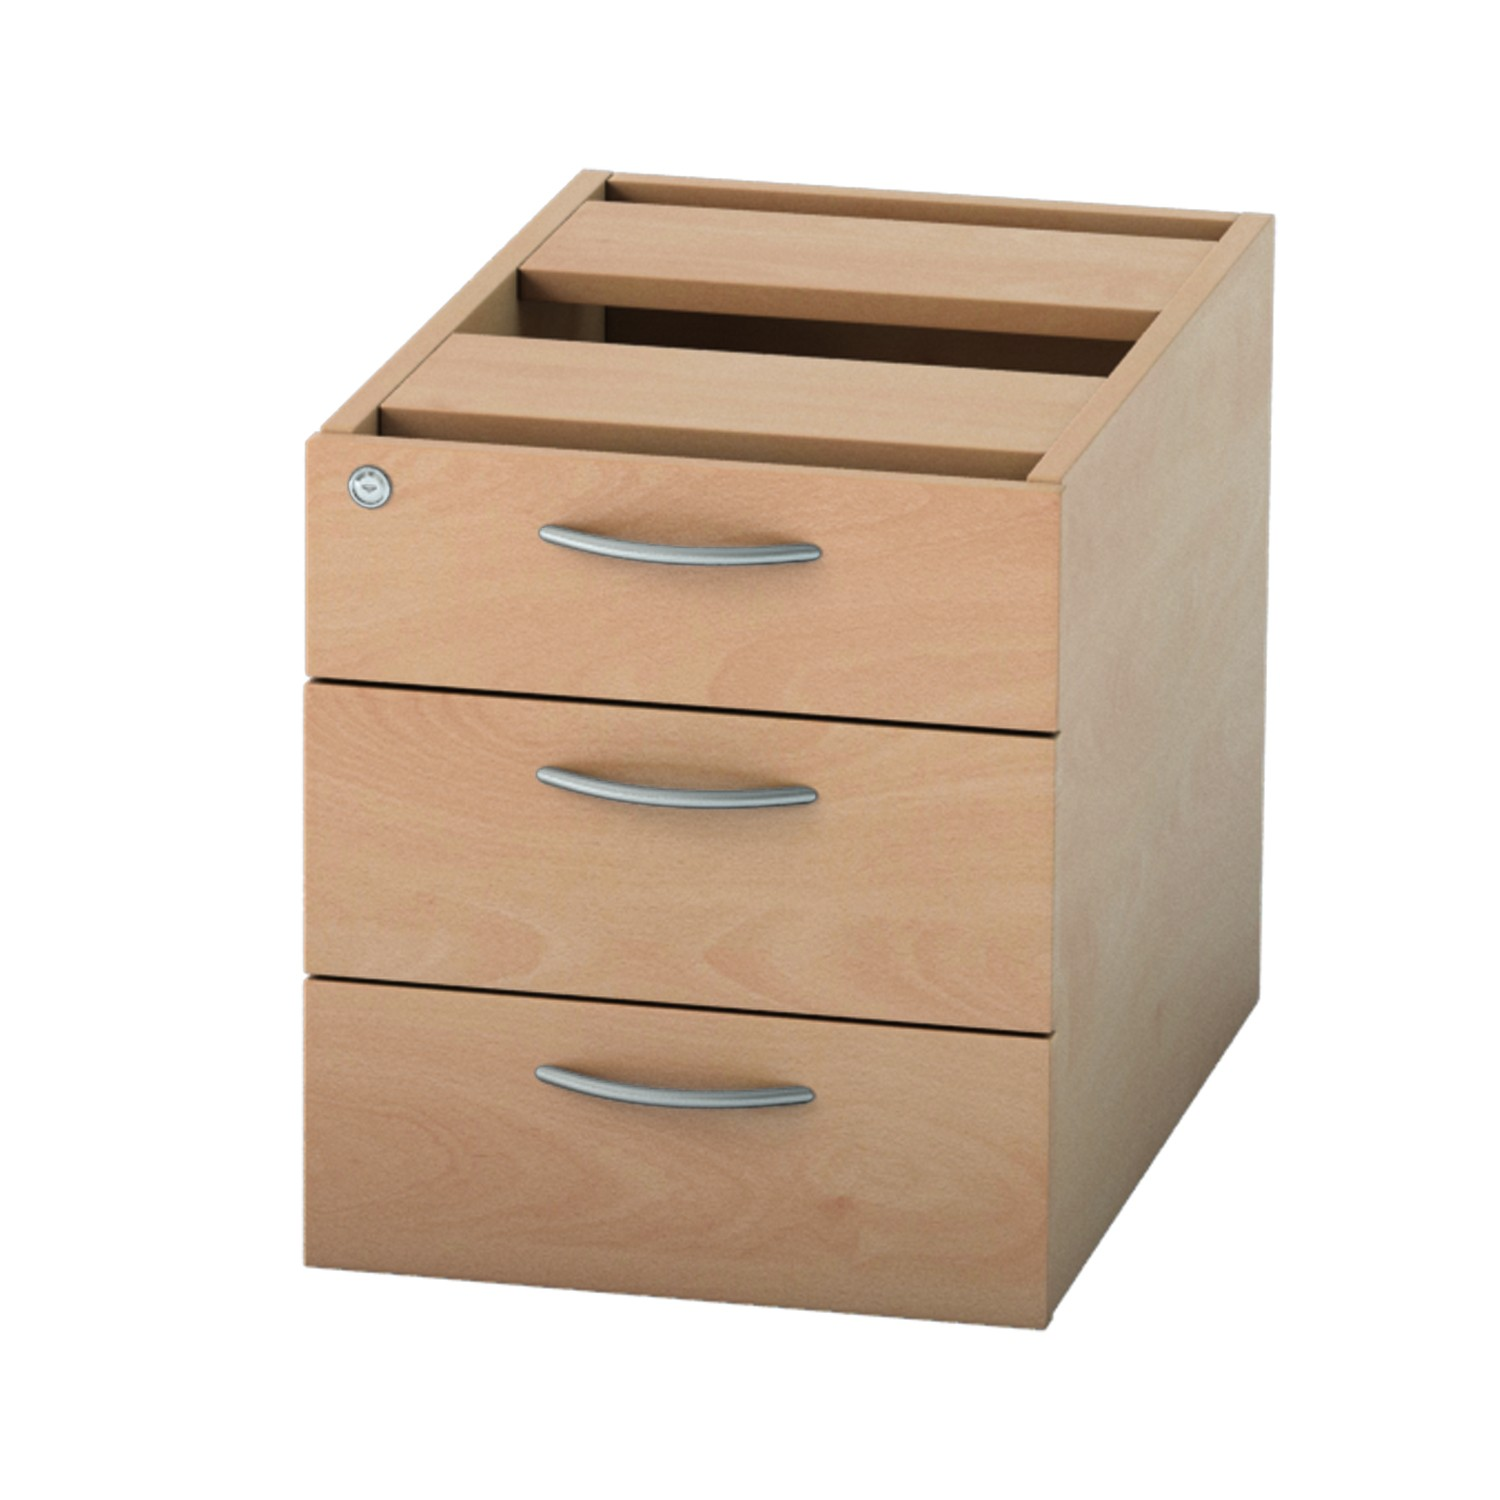 585mm 3 DRAWER FIXED PEDESTAL